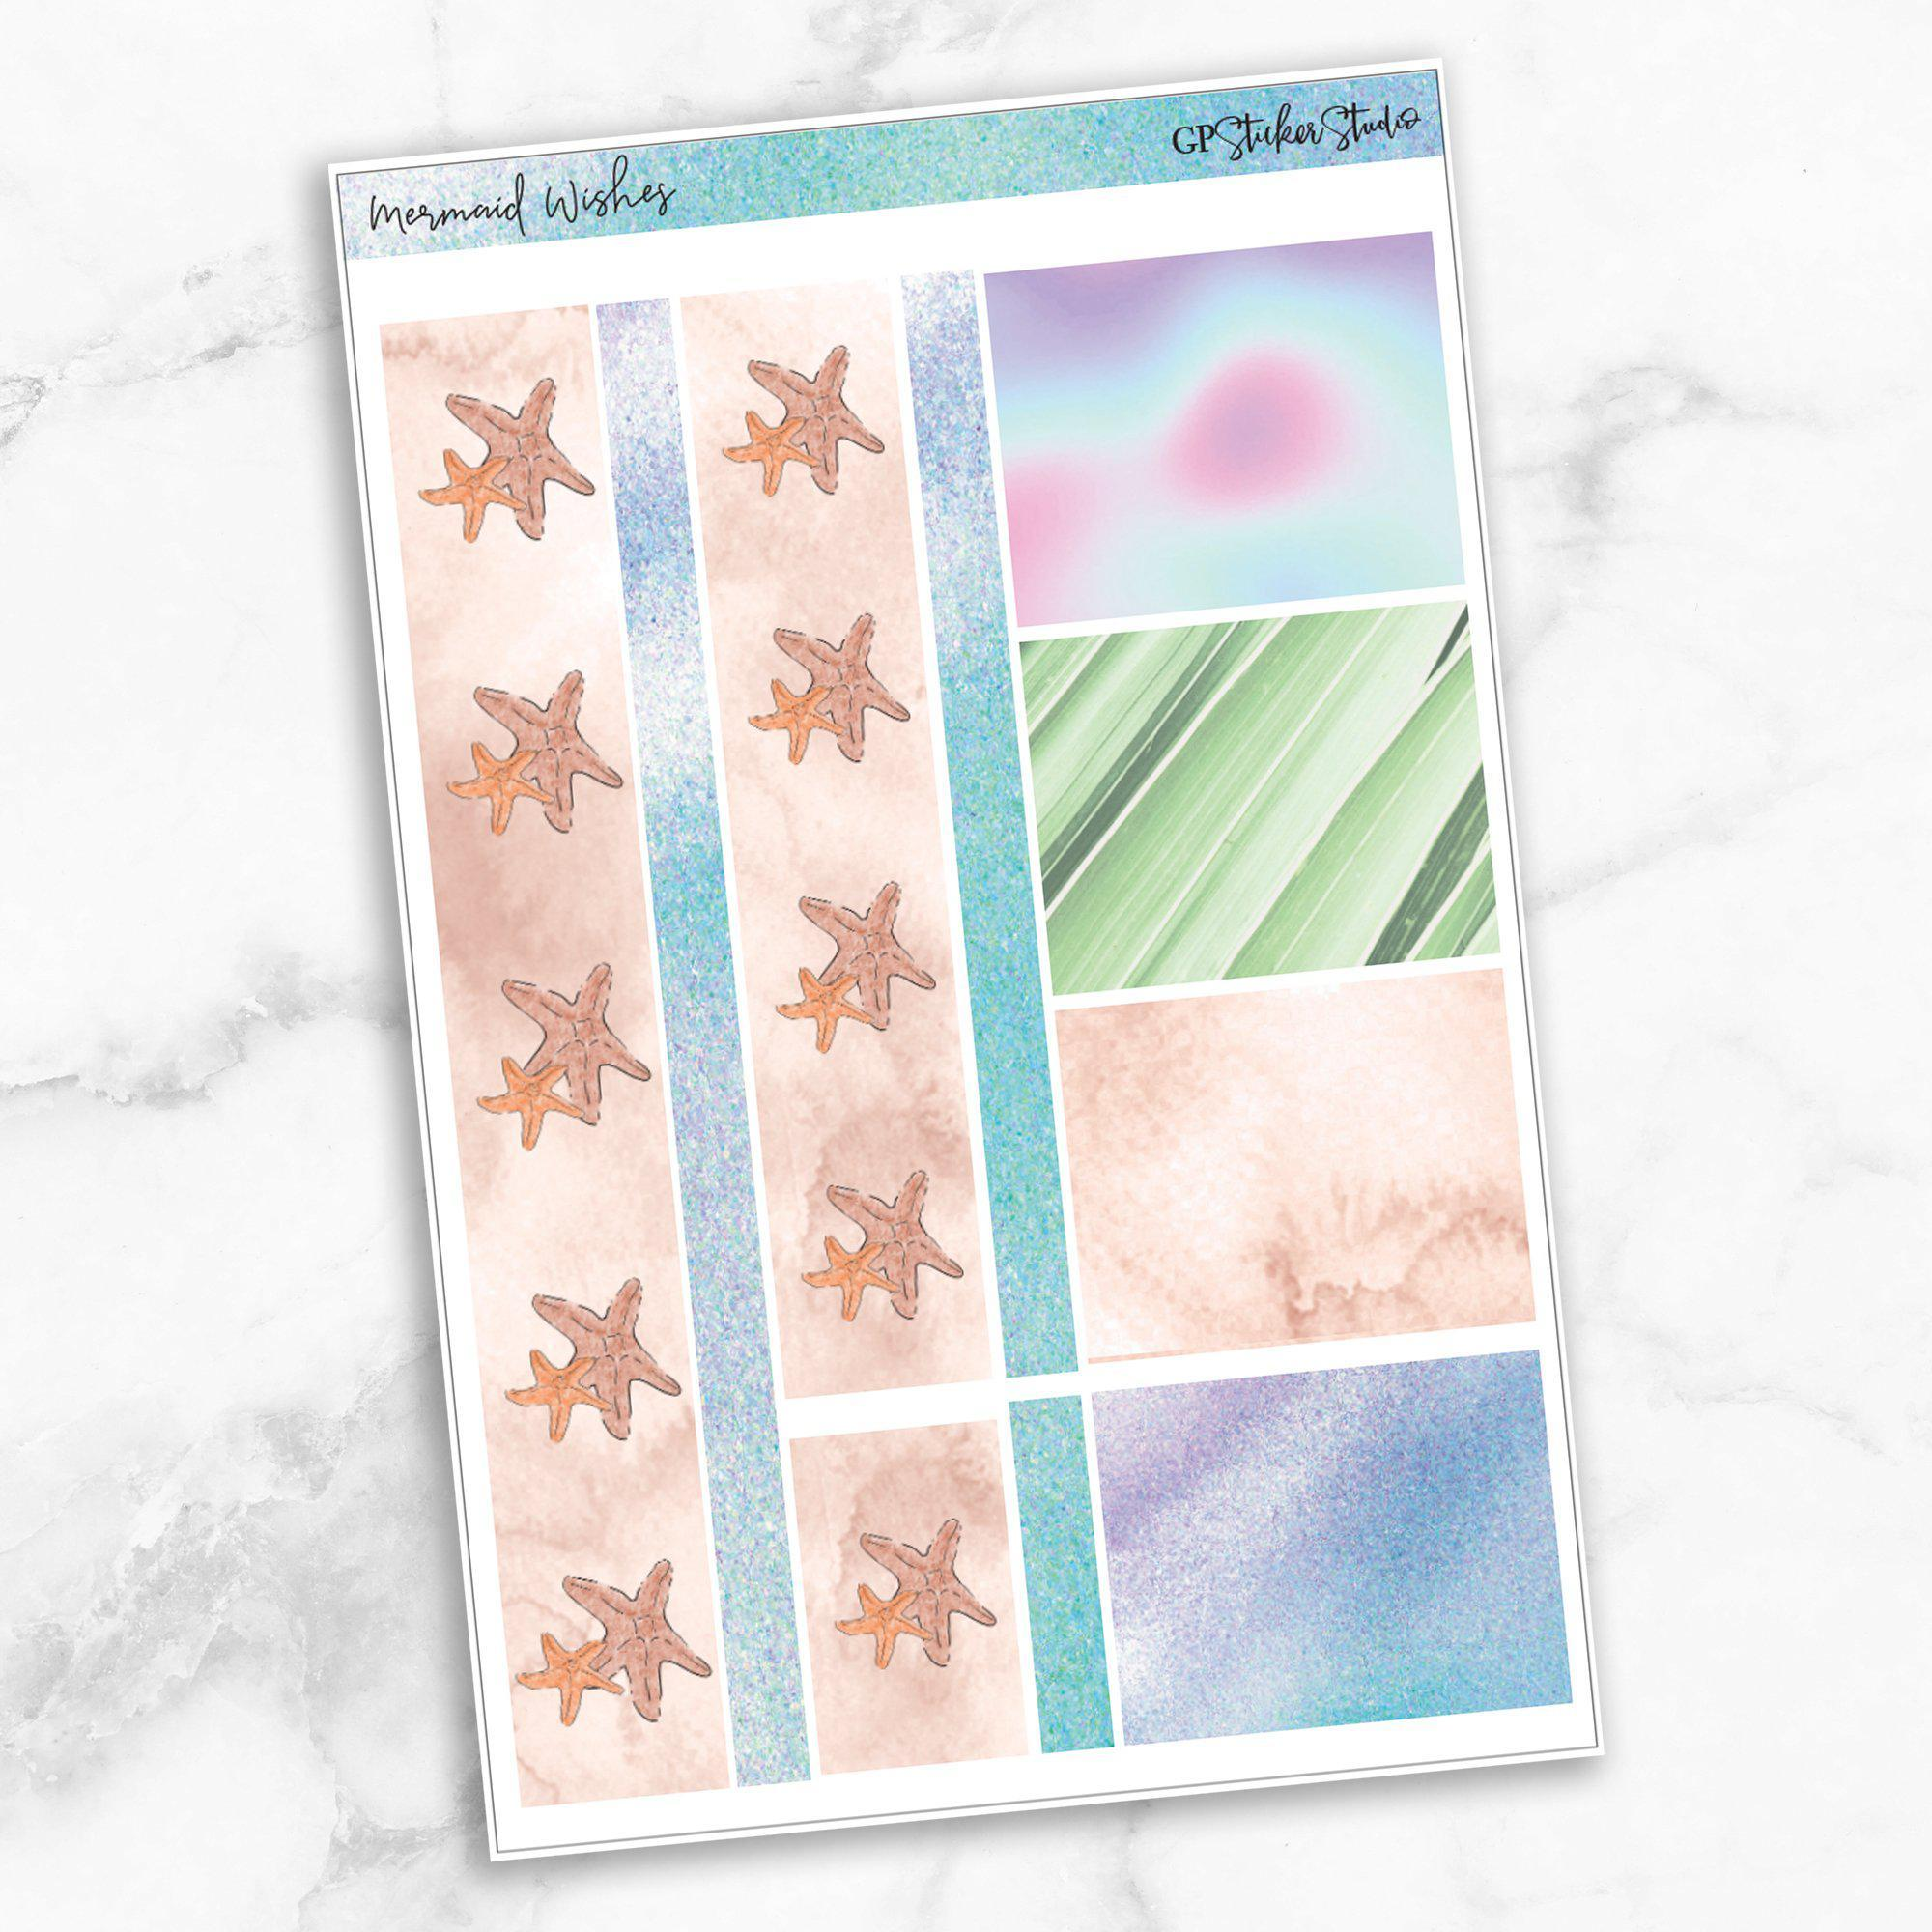 MERMAID WISHES Washi Sheet Stickers-The GP Studio